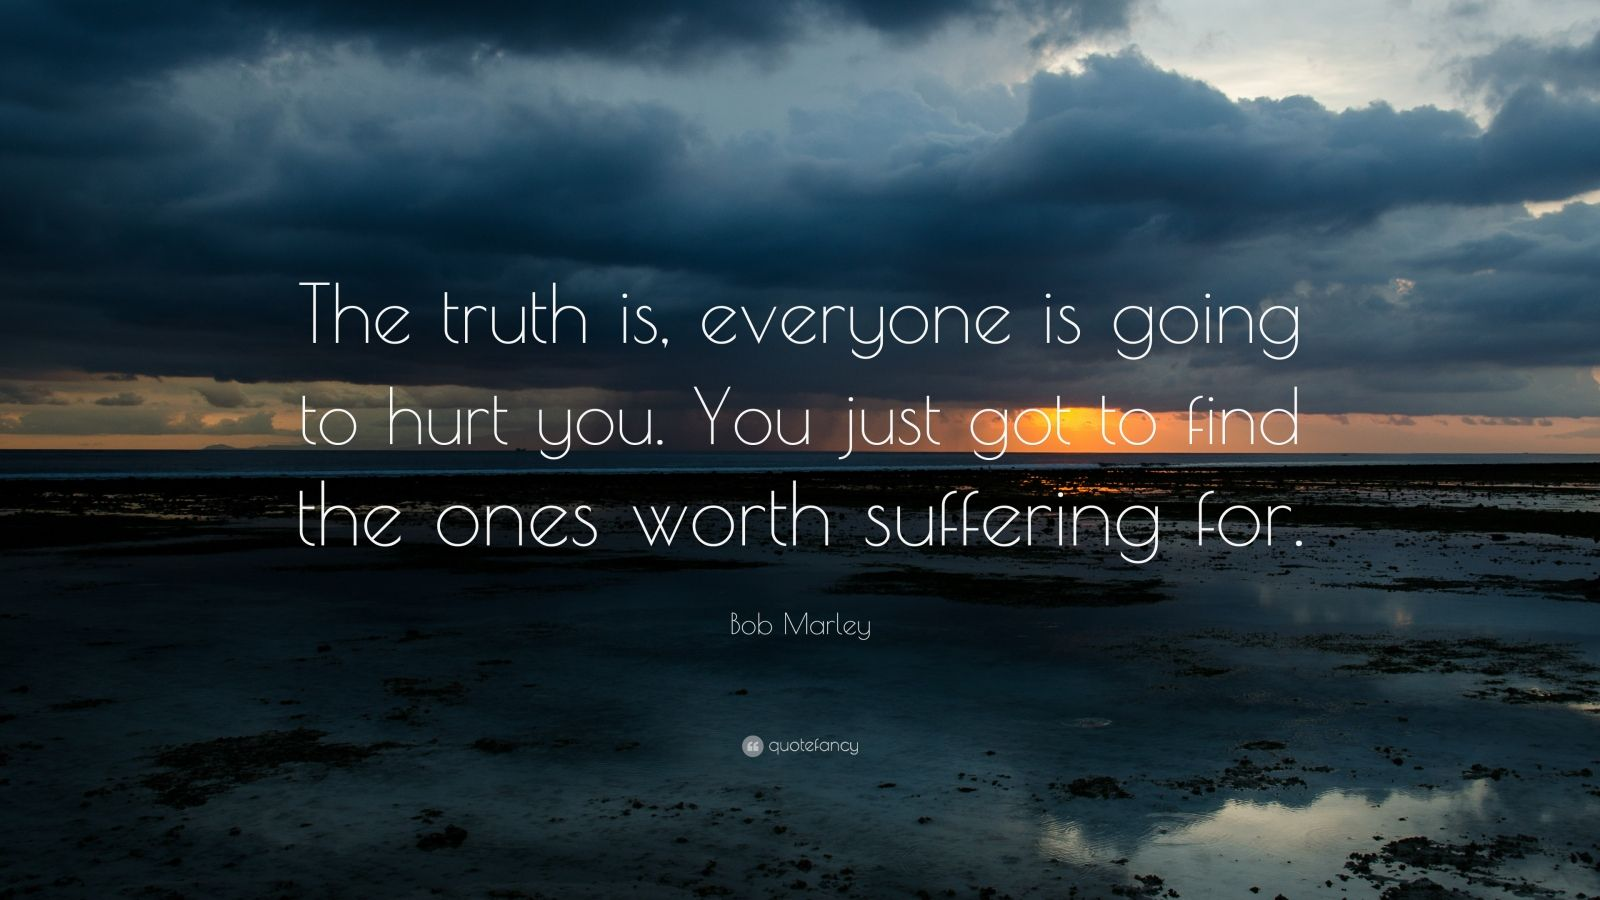 "Relationship Quotes: ""The truth is, everyone is going to hurt you. You just got to find the ones worth suffering for."" — Bob Marley"